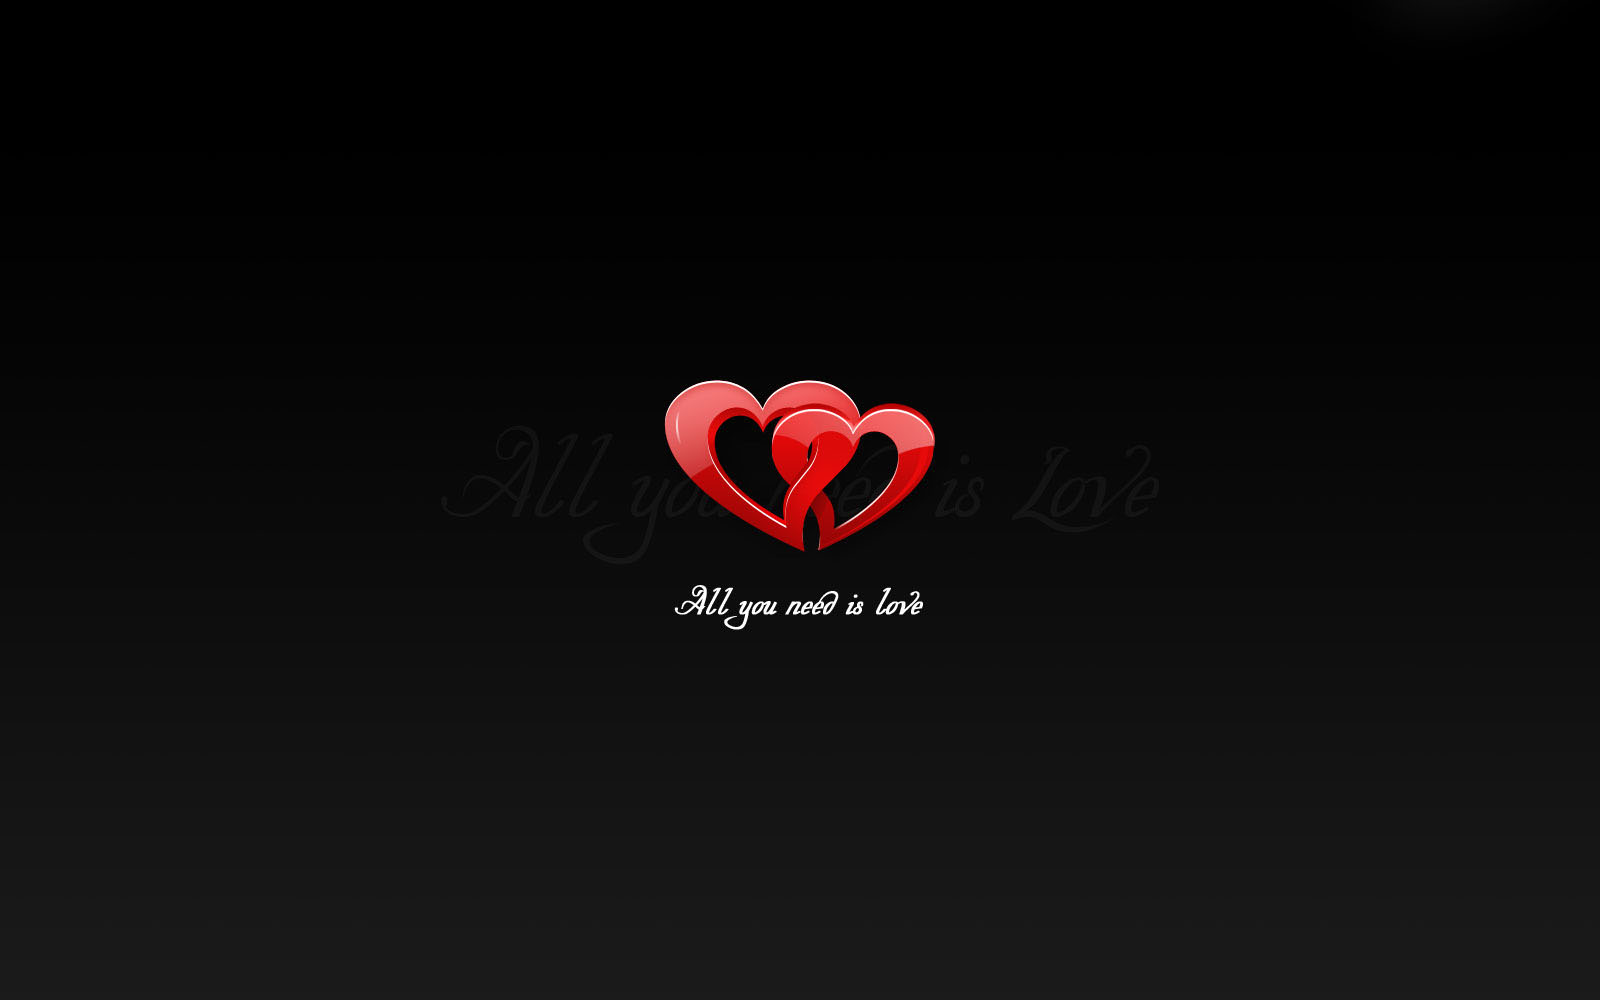 All Love Wallpaper Images : All You Need Is Love Wallpapers - Salon des Refus?s